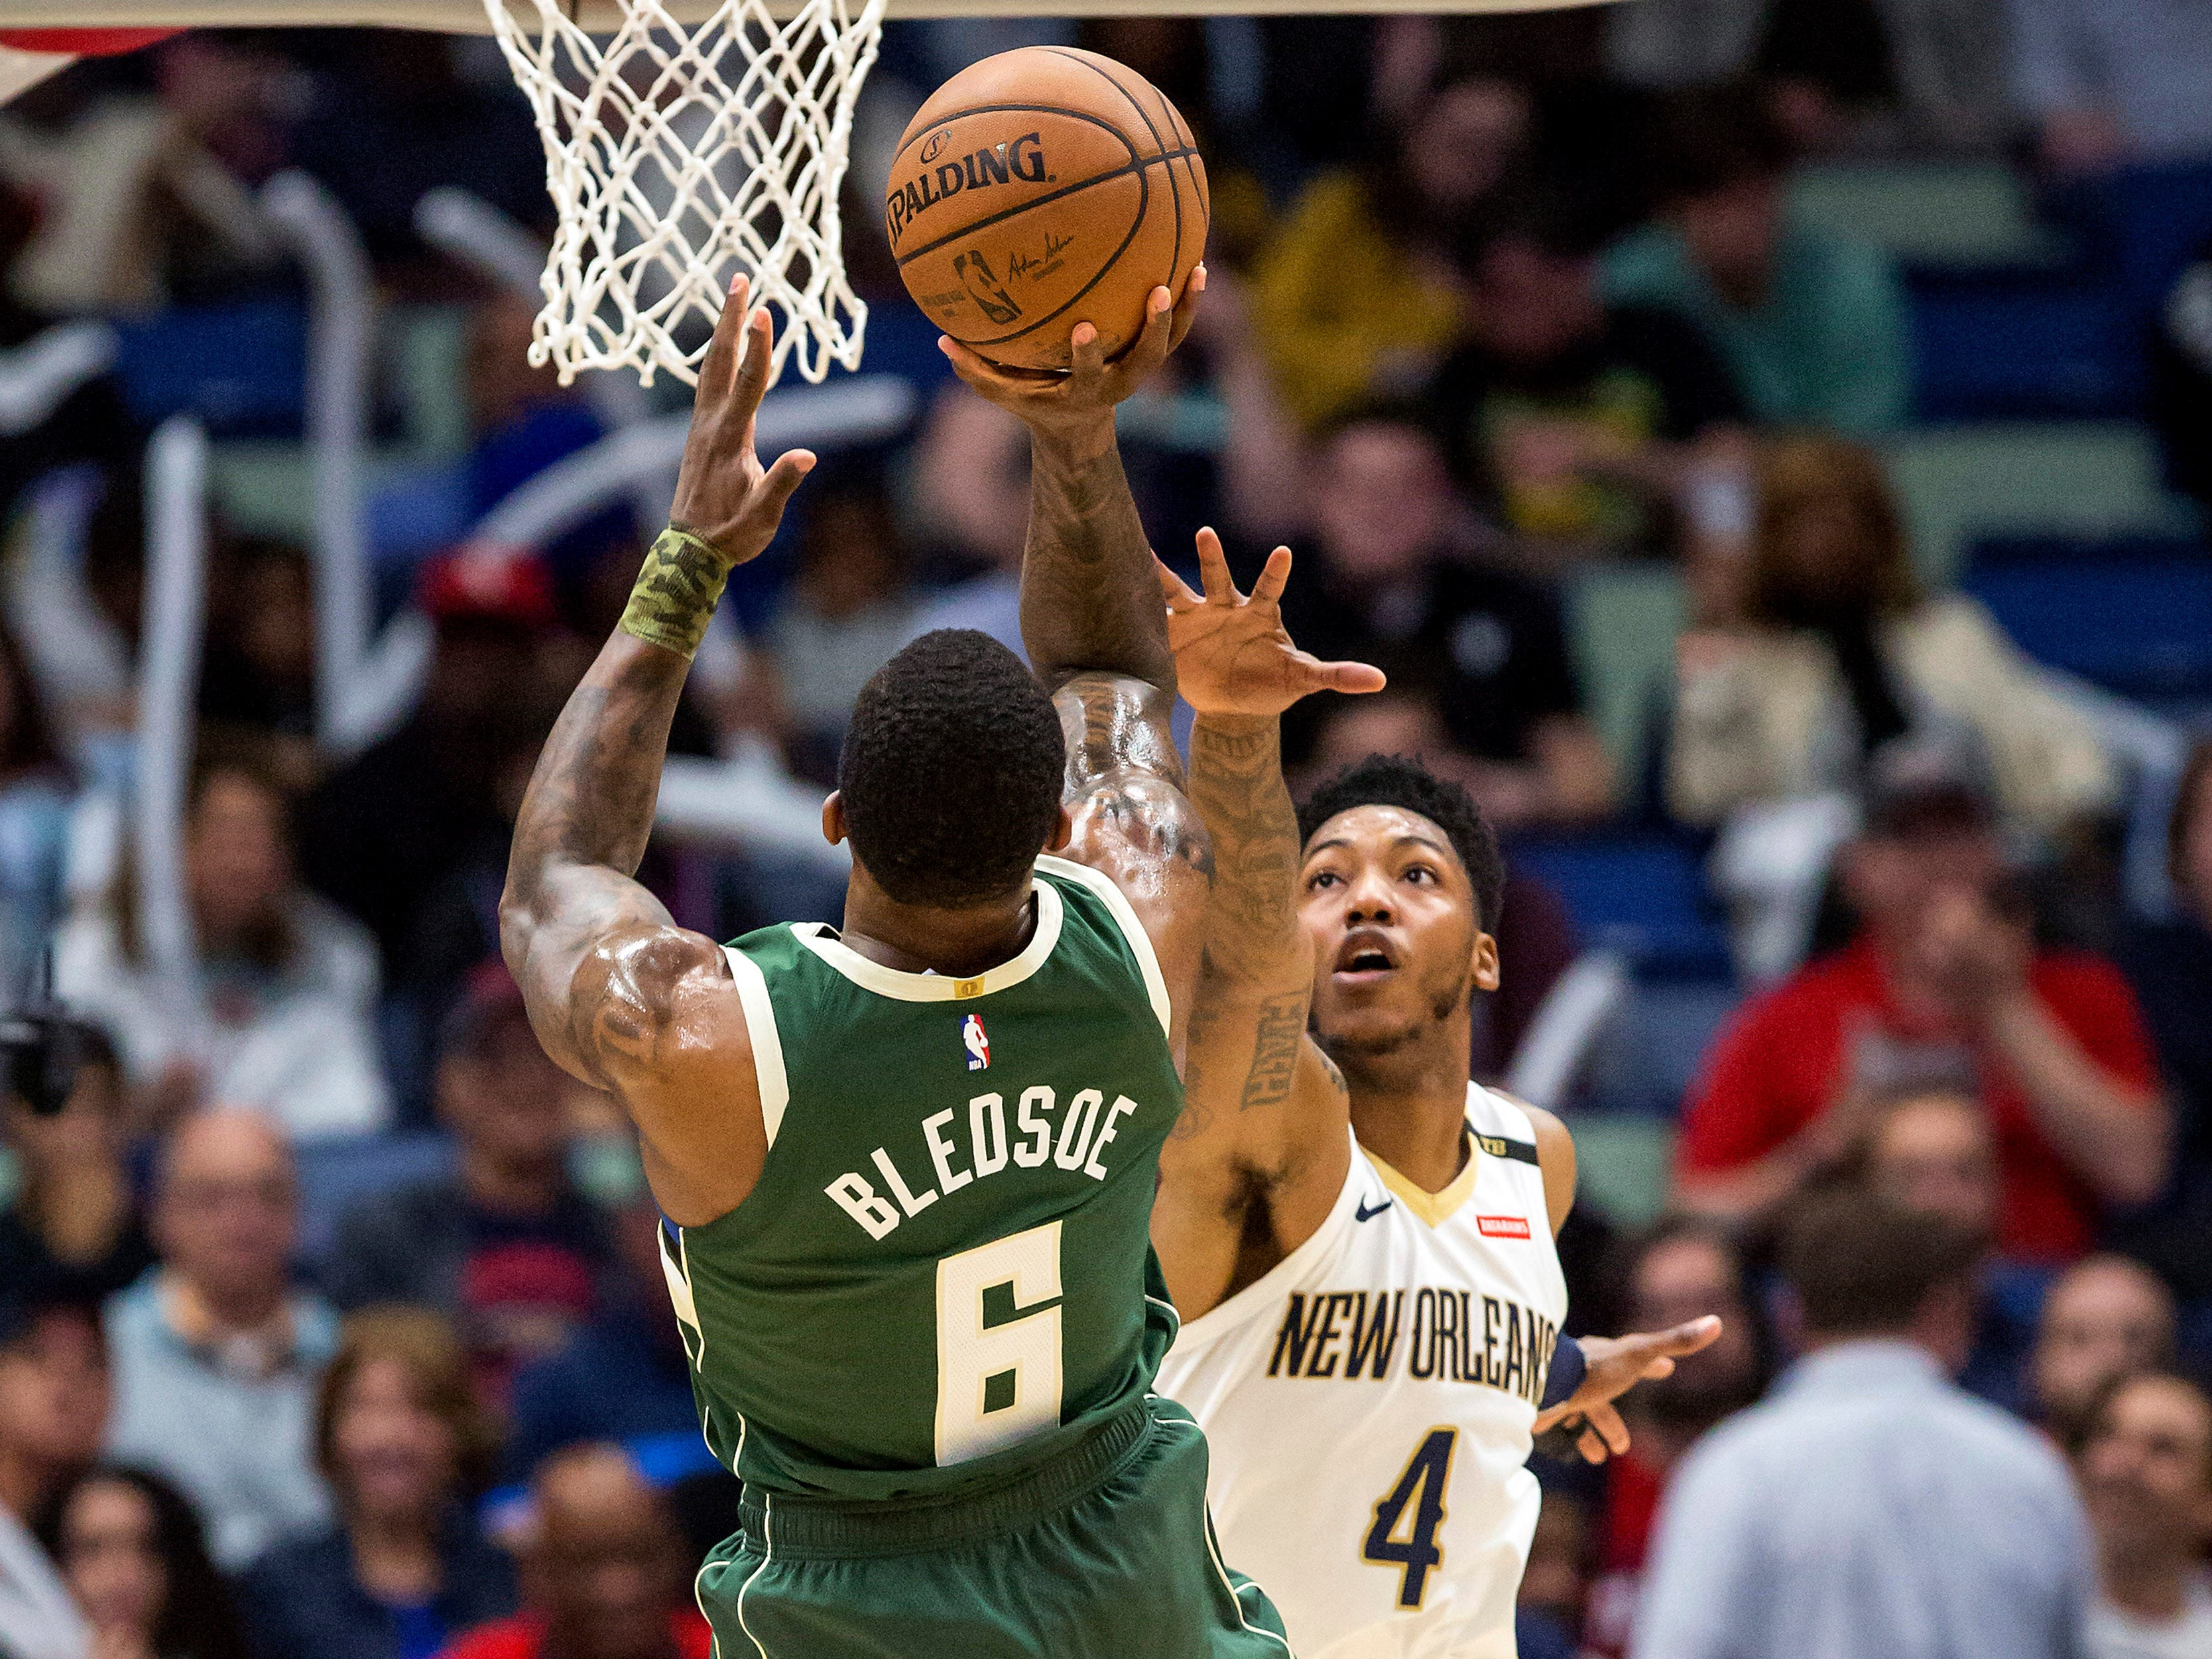 Bucks guard Eric Bledsoe puts up a shot over Pelicans guard Elfrid Payton during the first half Tuesday.